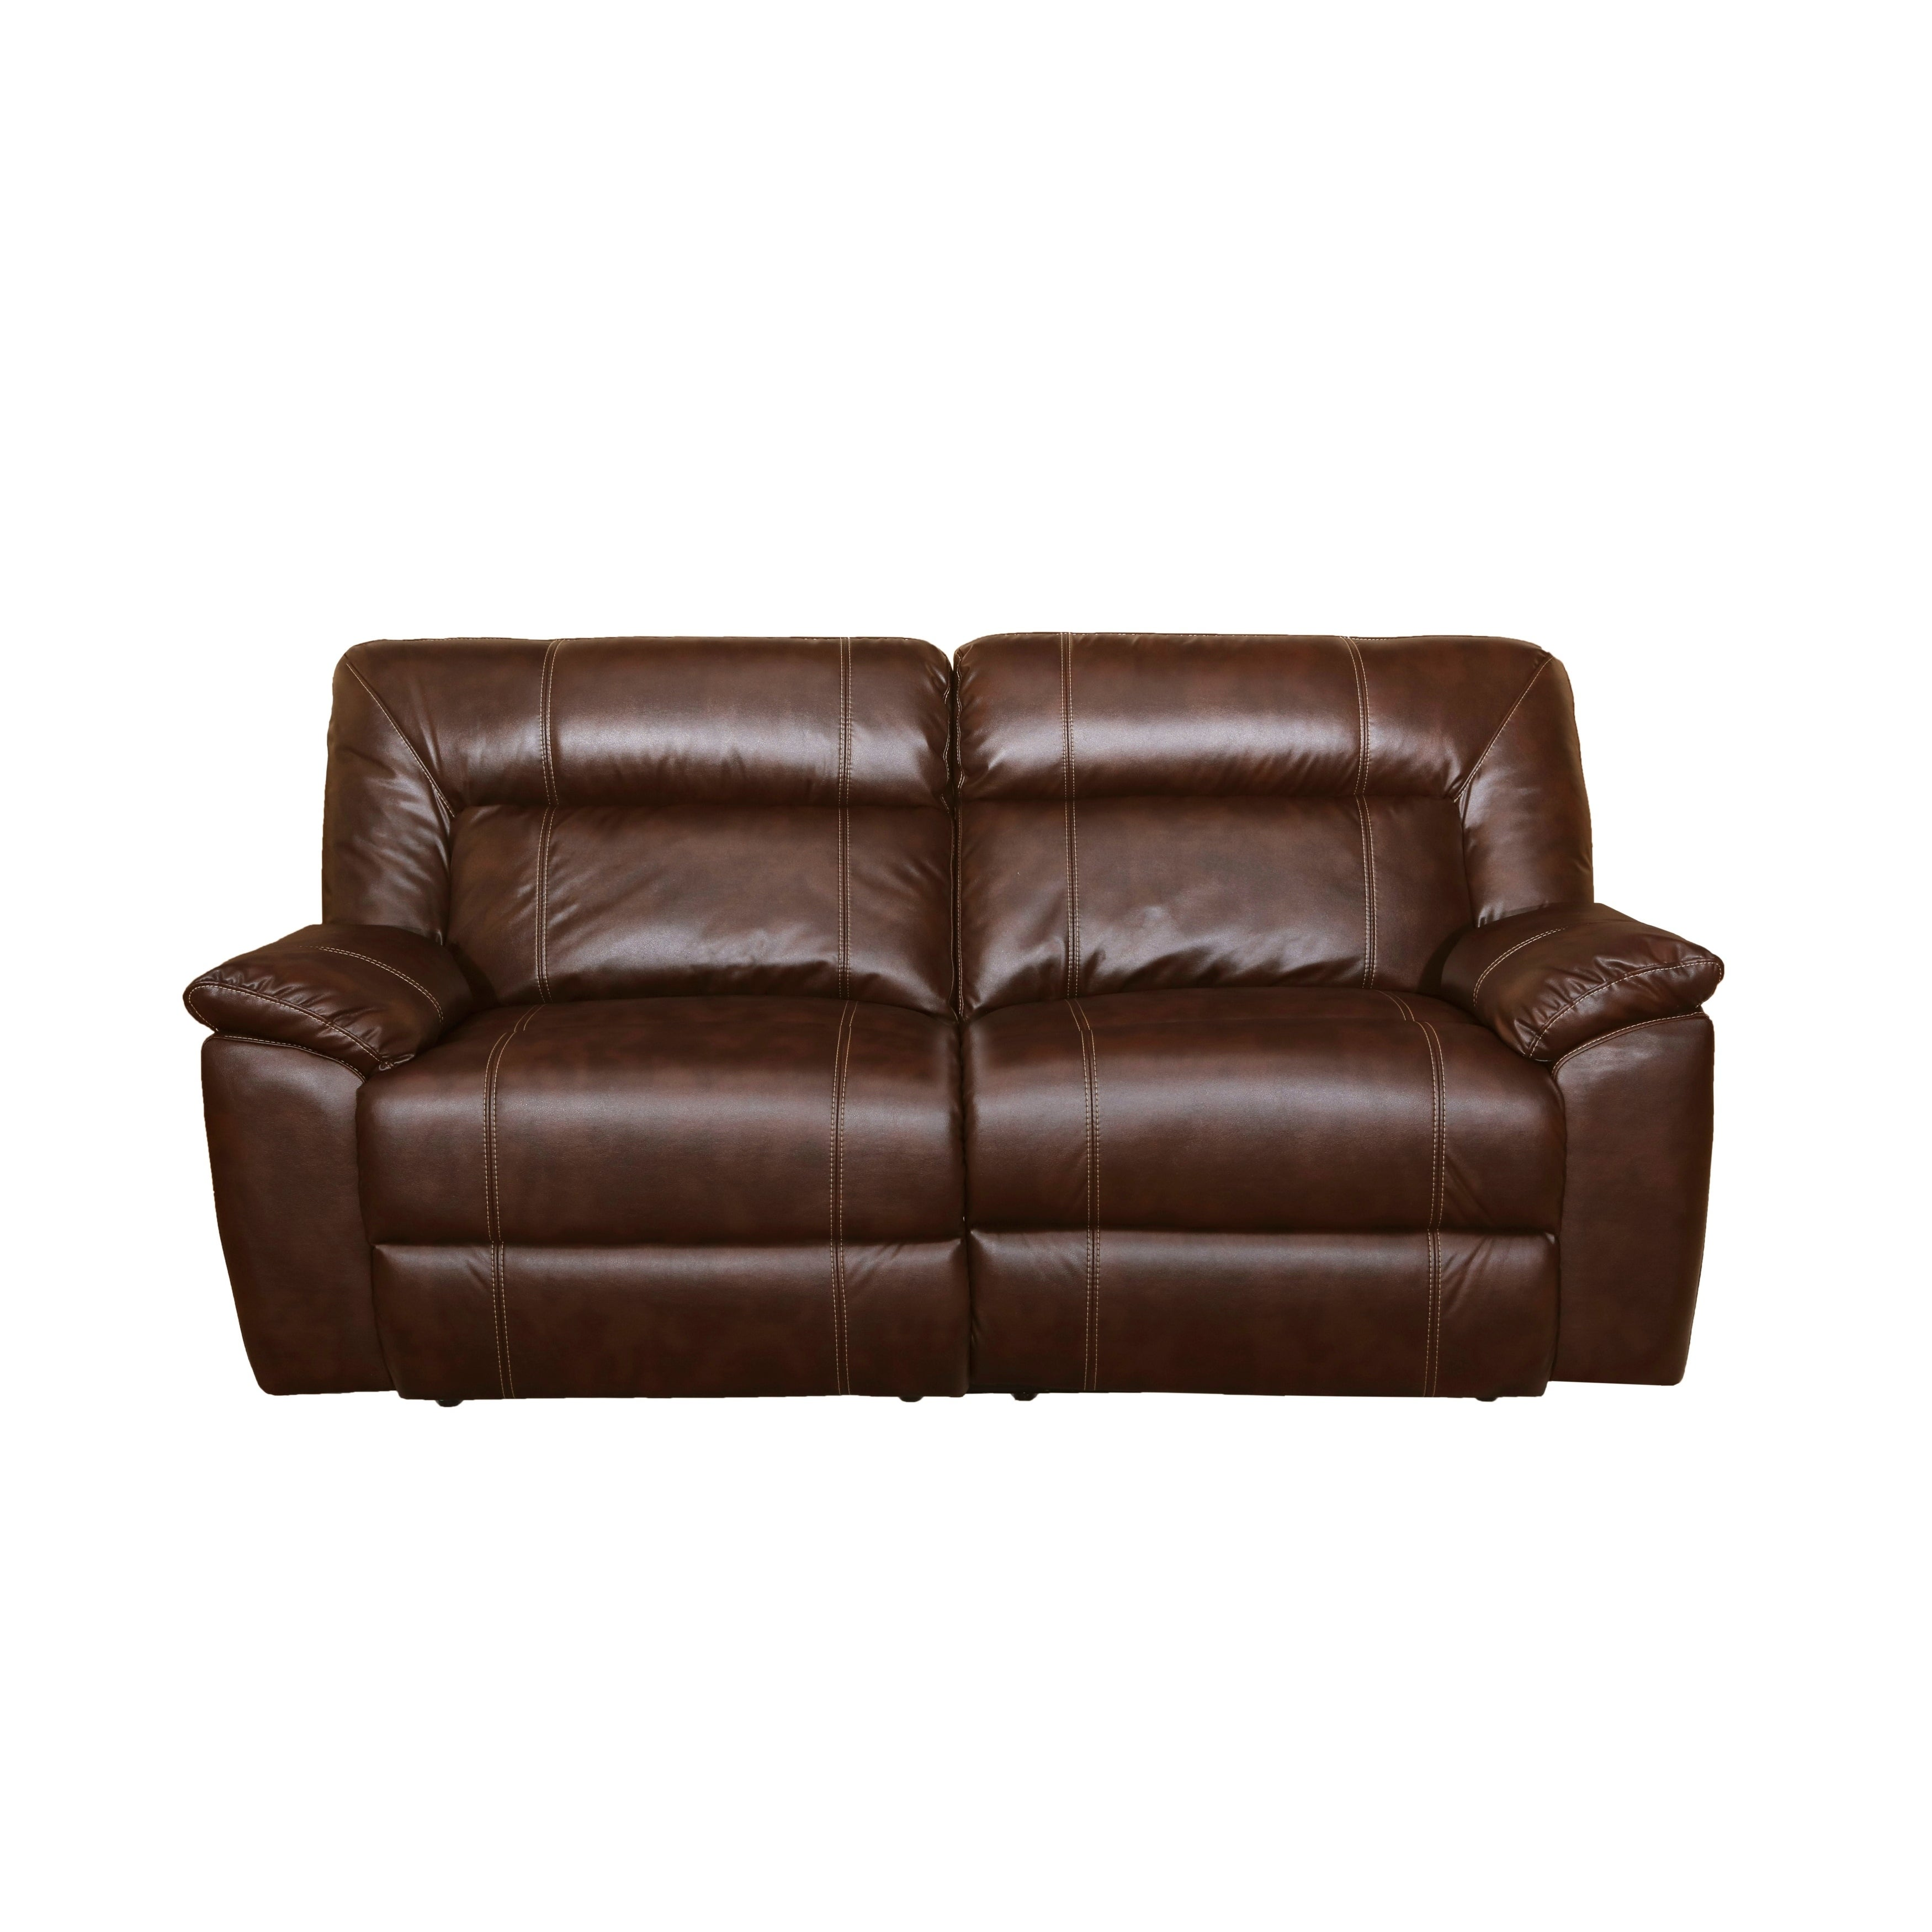 office home for reclining clarendon loveseat in furniture tan htm sofa leather and sale dark